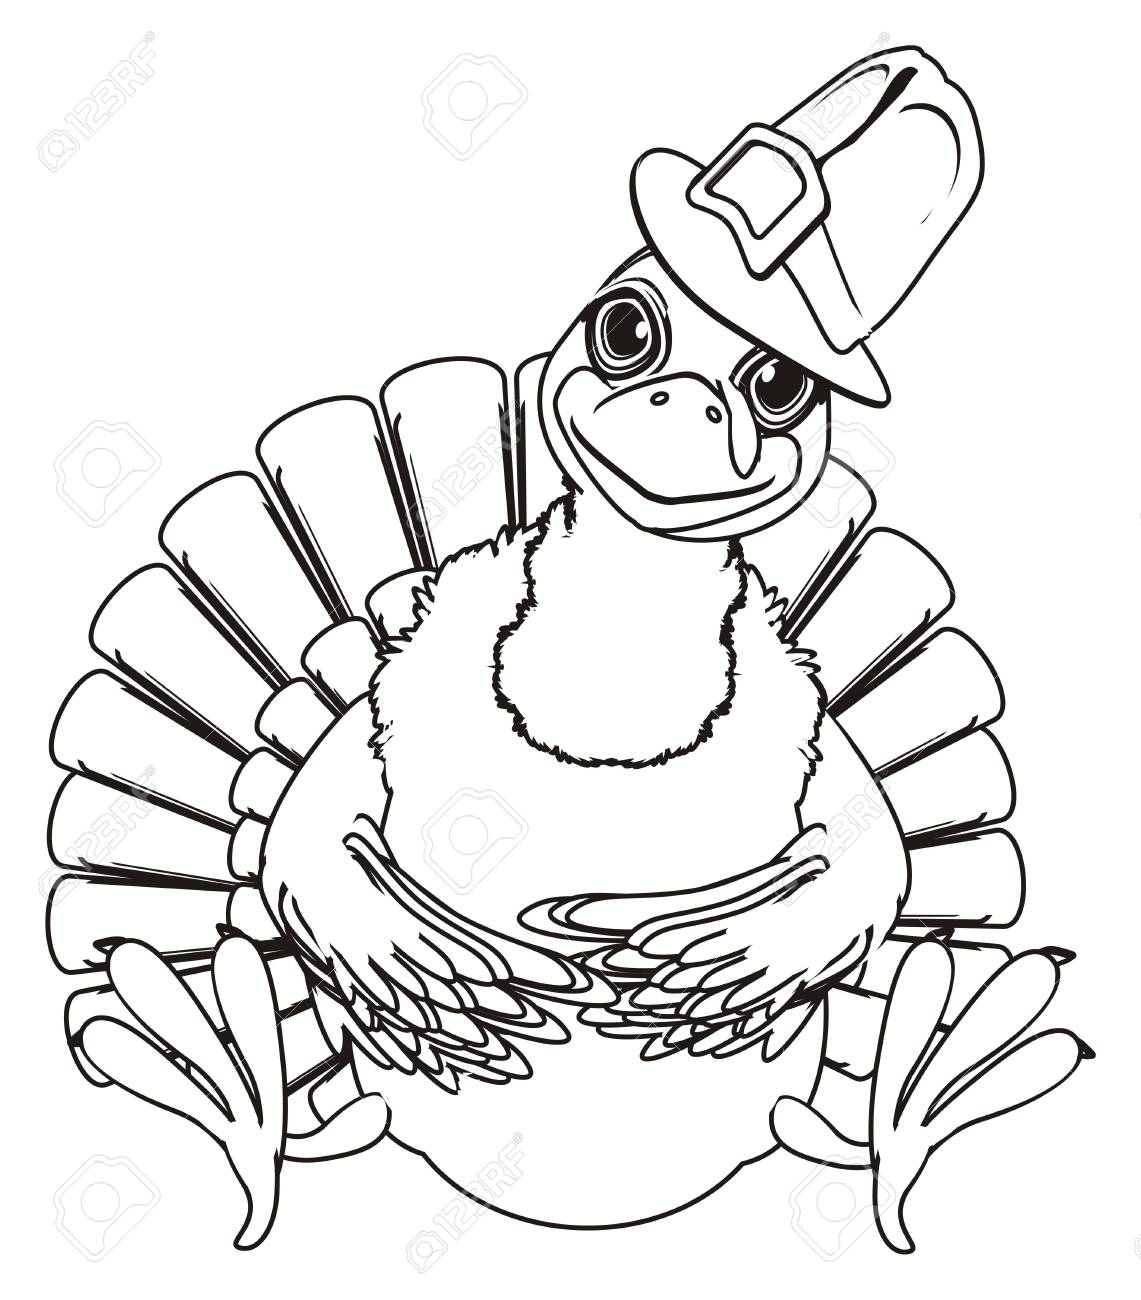 Turkey Coloring Picture Of Hat - Worksheet & Coloring Pages